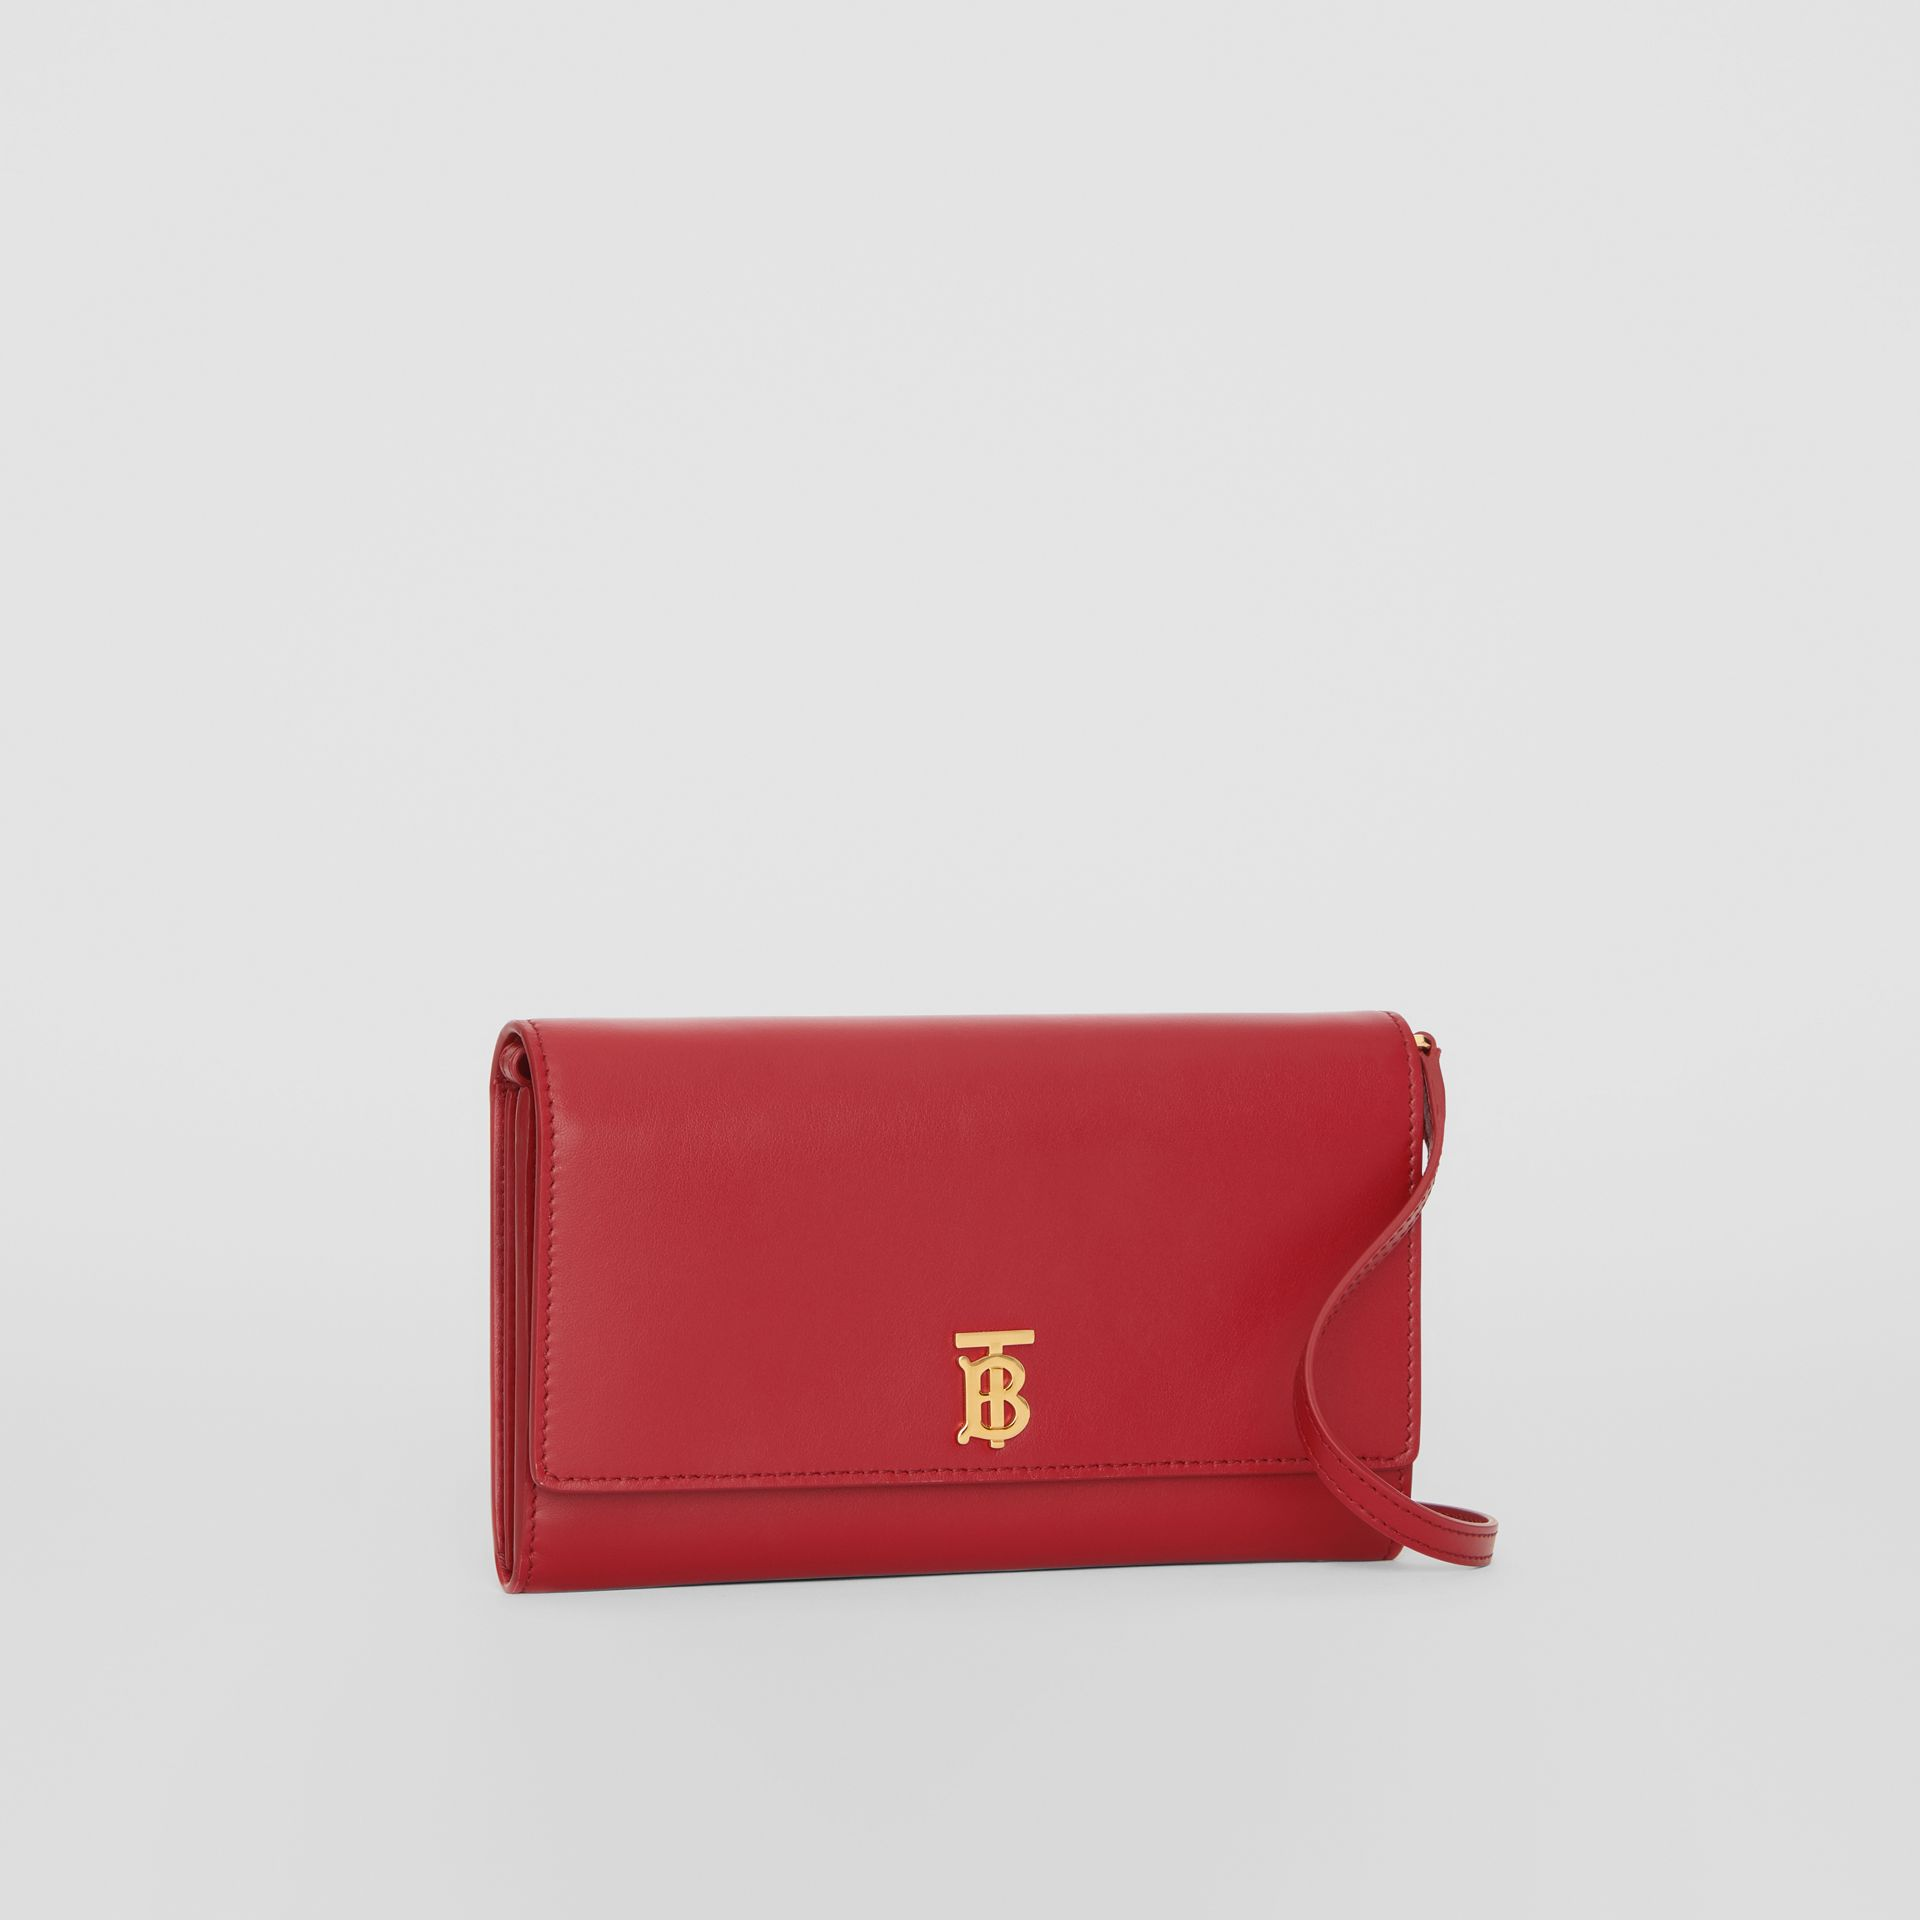 Monogram Motif Leather Wallet with Detachable Strap in Crimson - Women | Burberry Singapore - gallery image 6